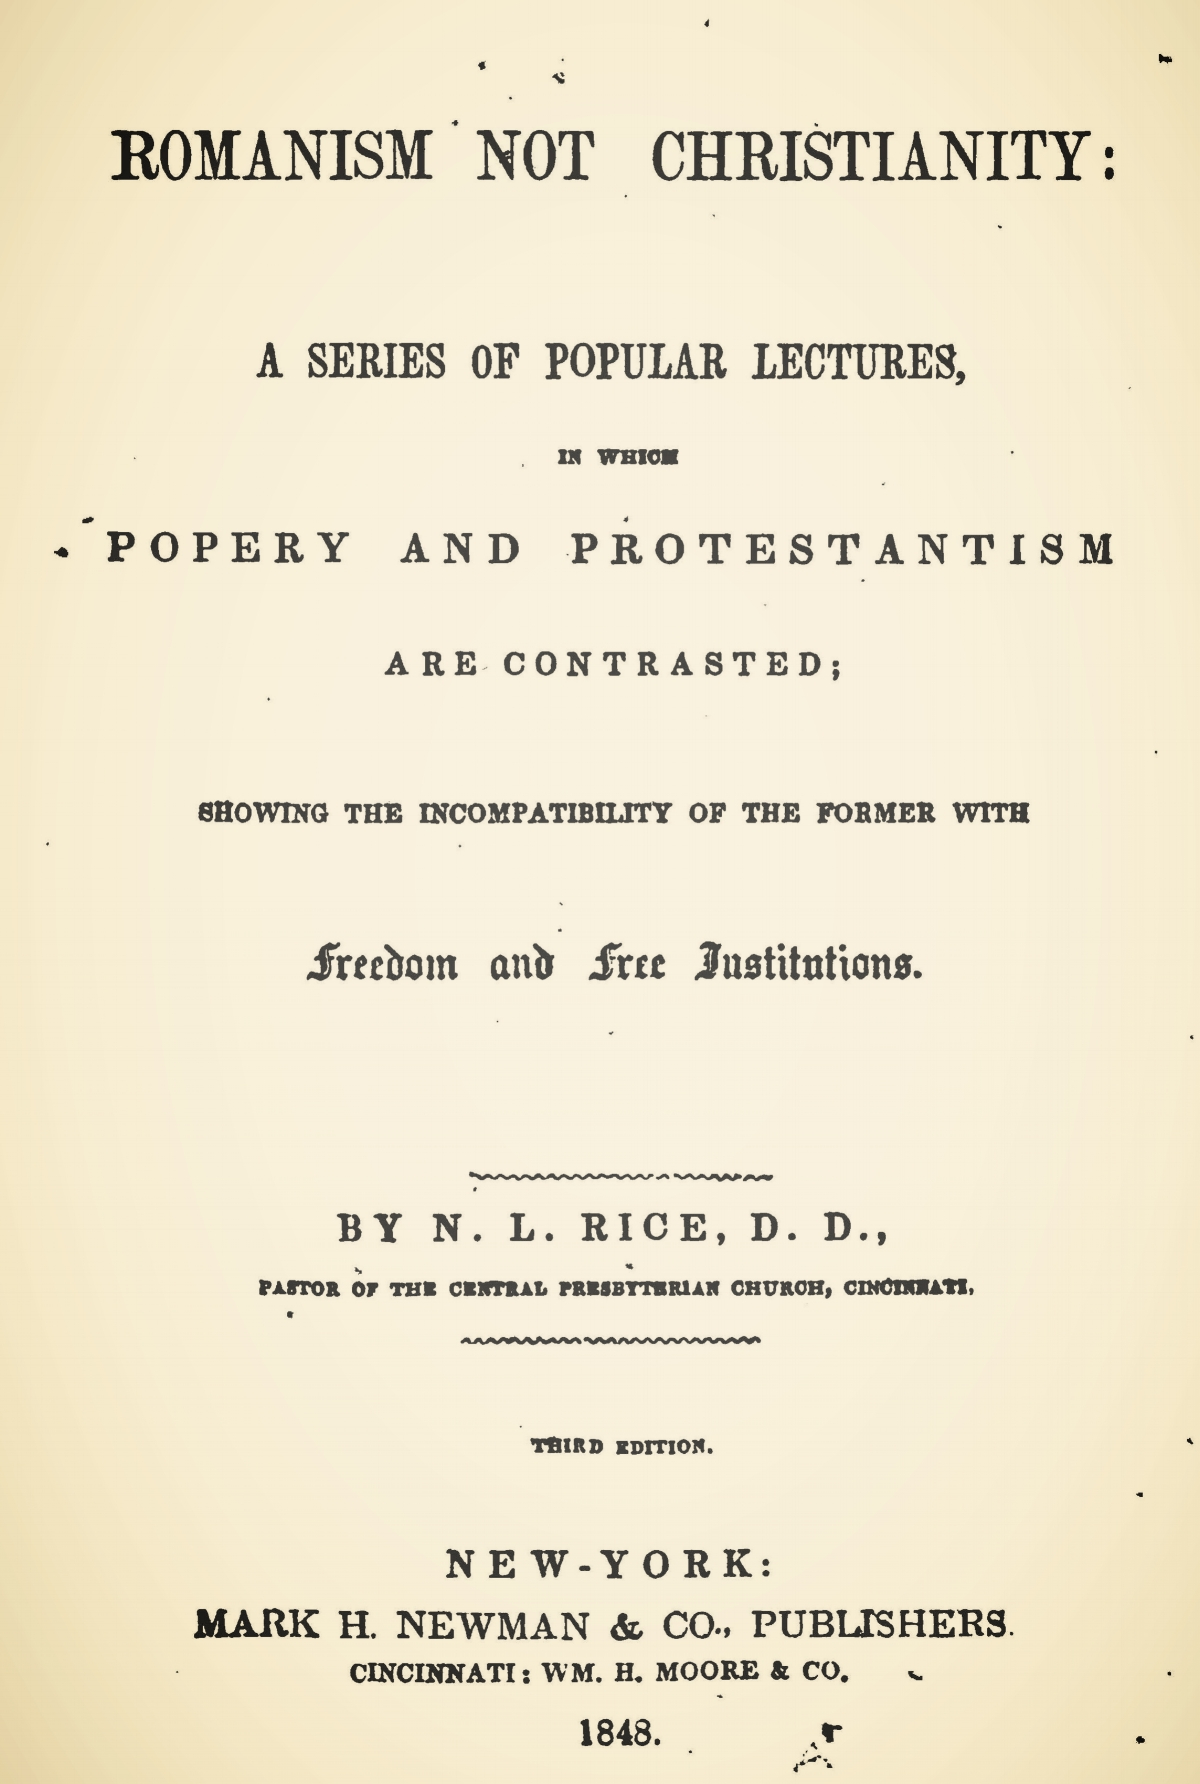 Rice, Nathan Lewis, Romanism Not Christianity Title Page.jpg